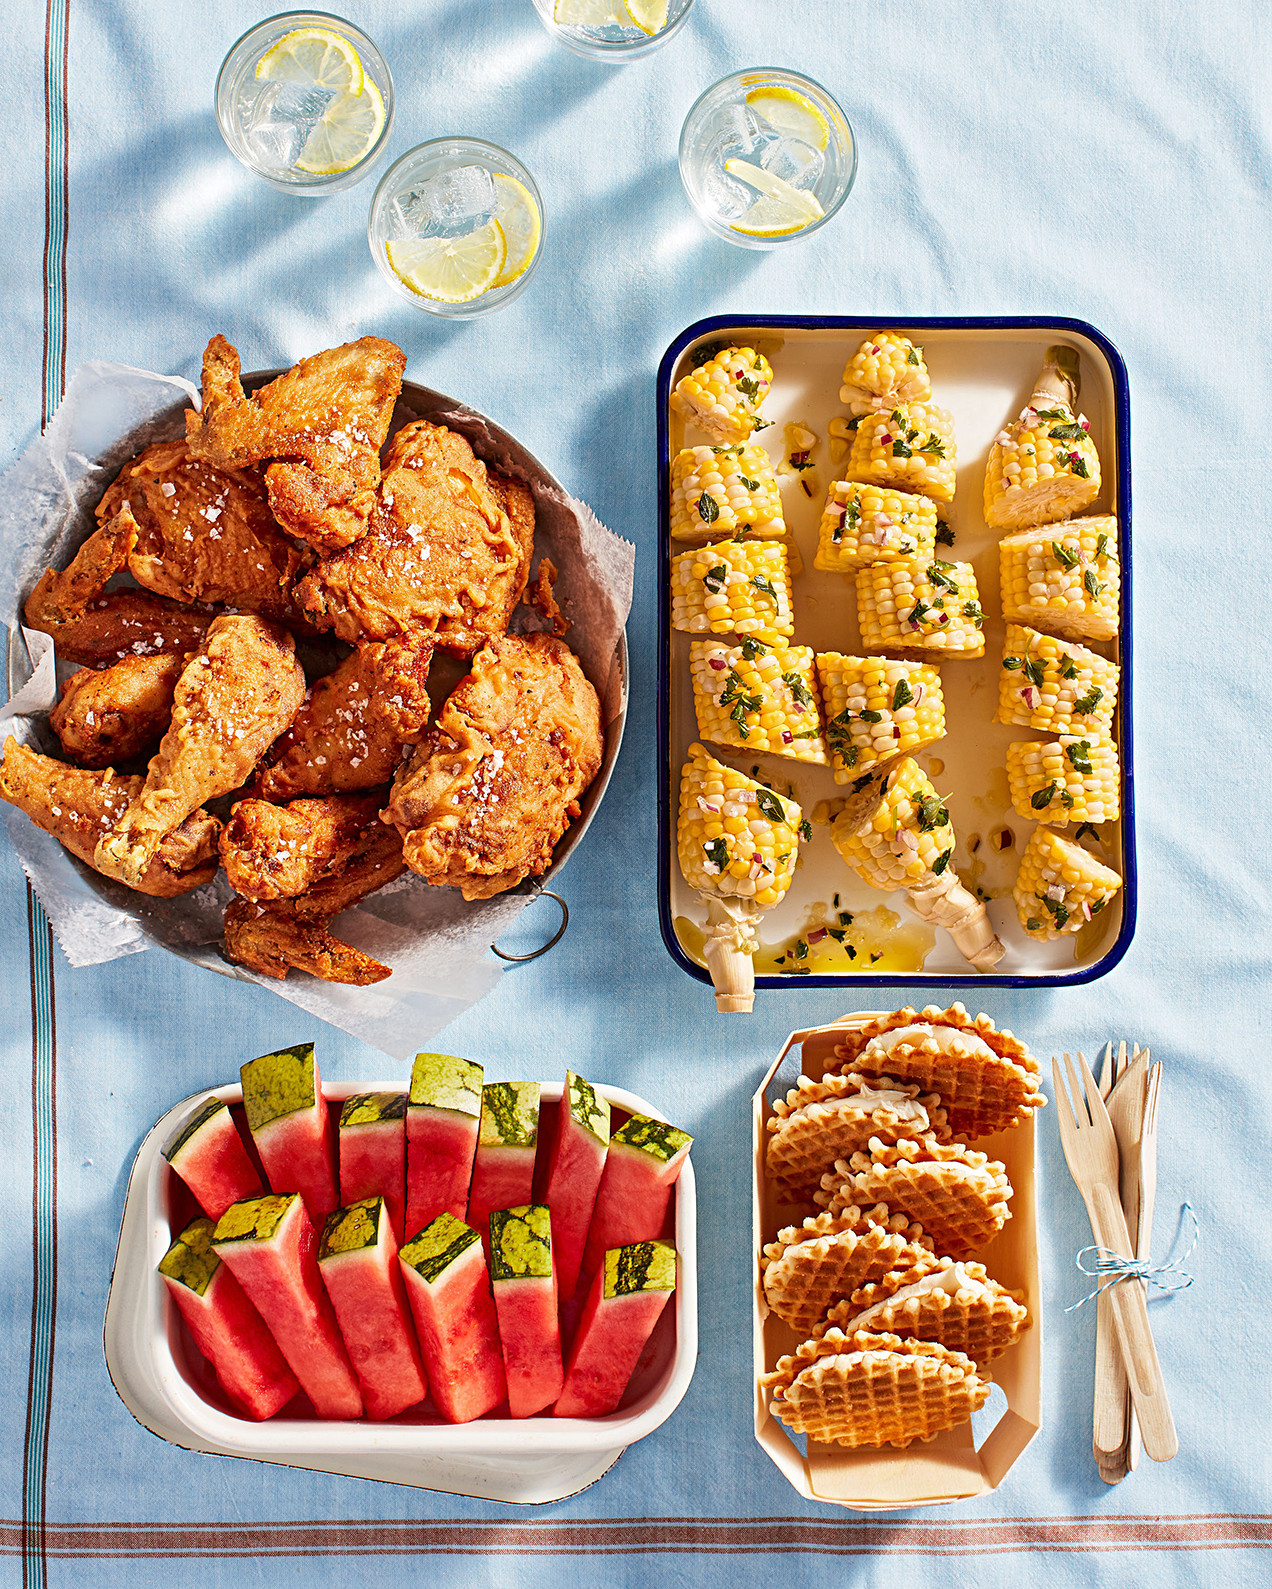 picnic spread with fried chicken, corn, watermelon, and mascarpone butter cookie sandwiches